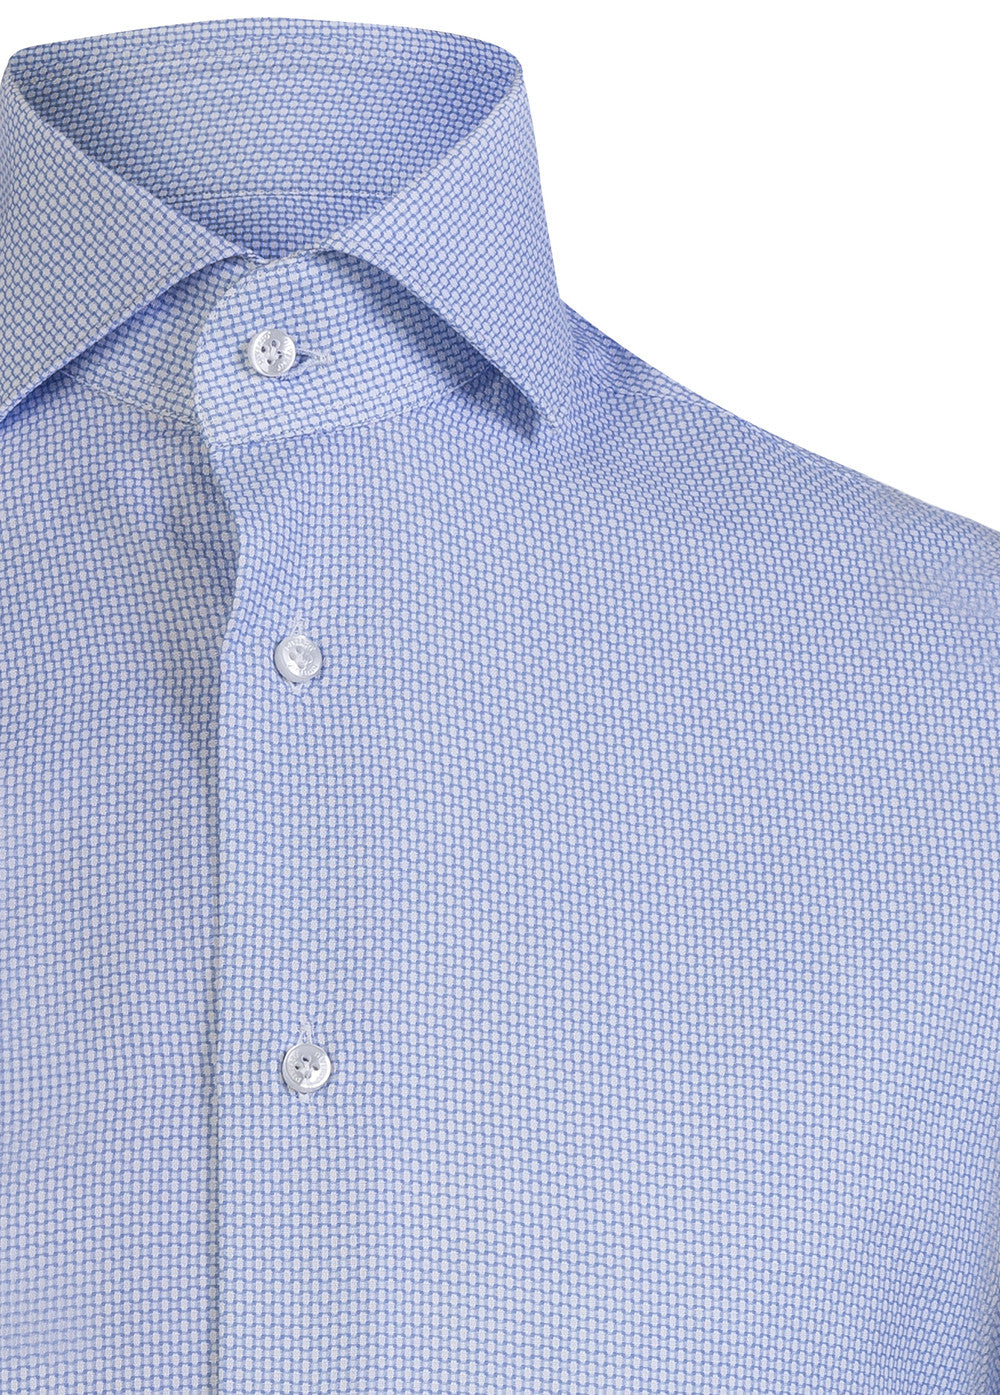 Sky Spot Short Sleeve Shirt